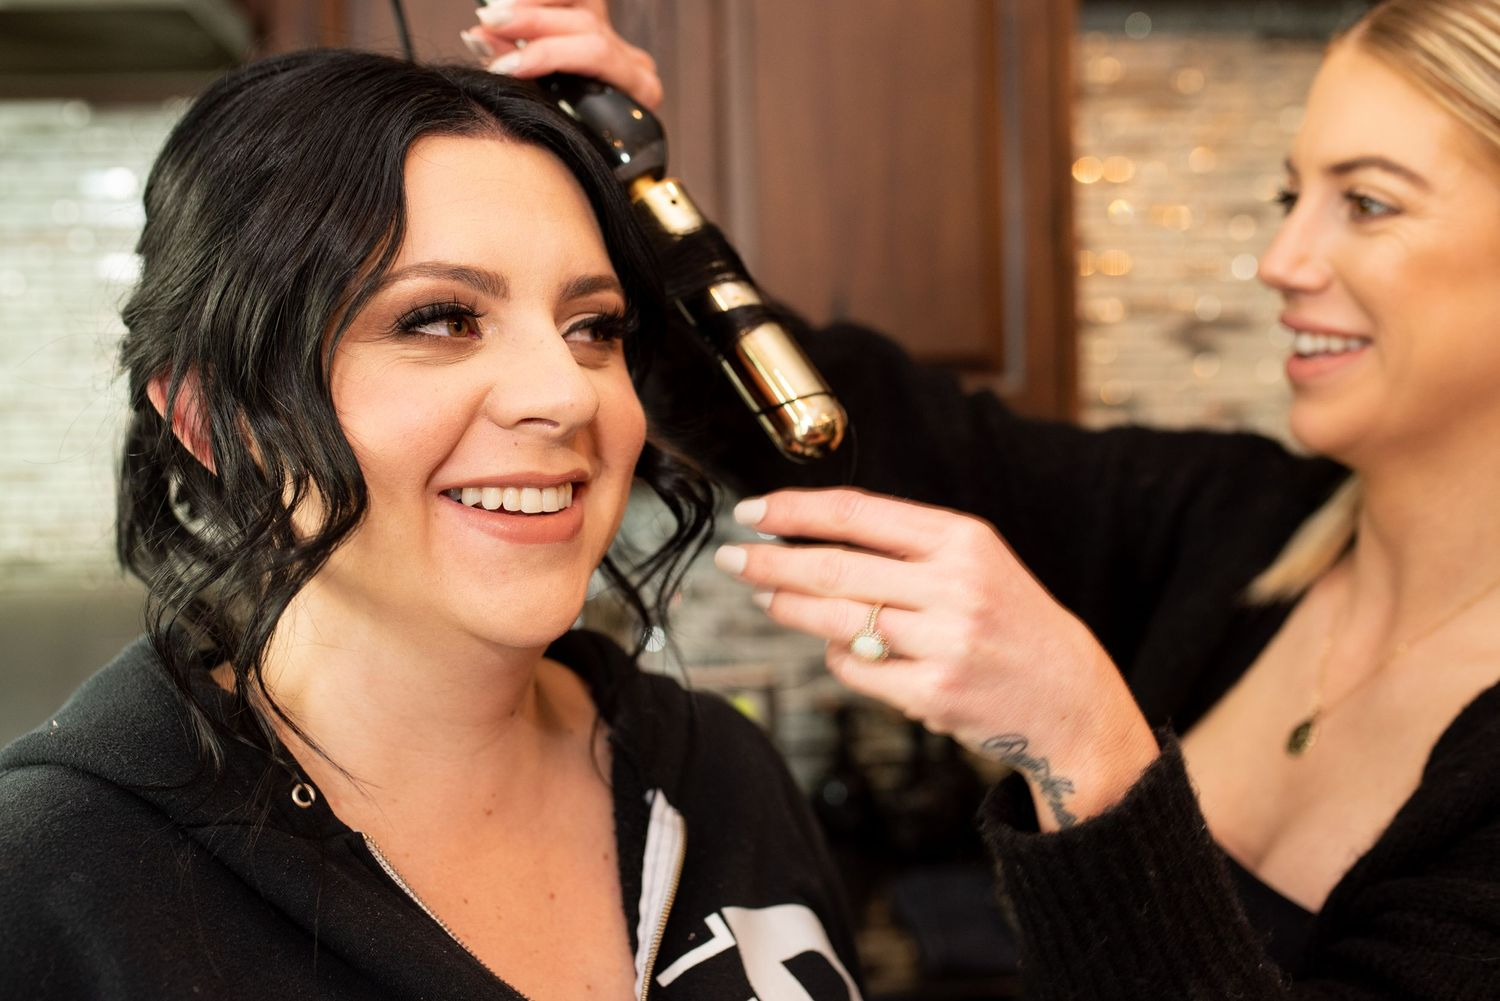 Tulare hairstylist Tanner Mathewson bridal hair for wedding by Miranda Munoz Photography